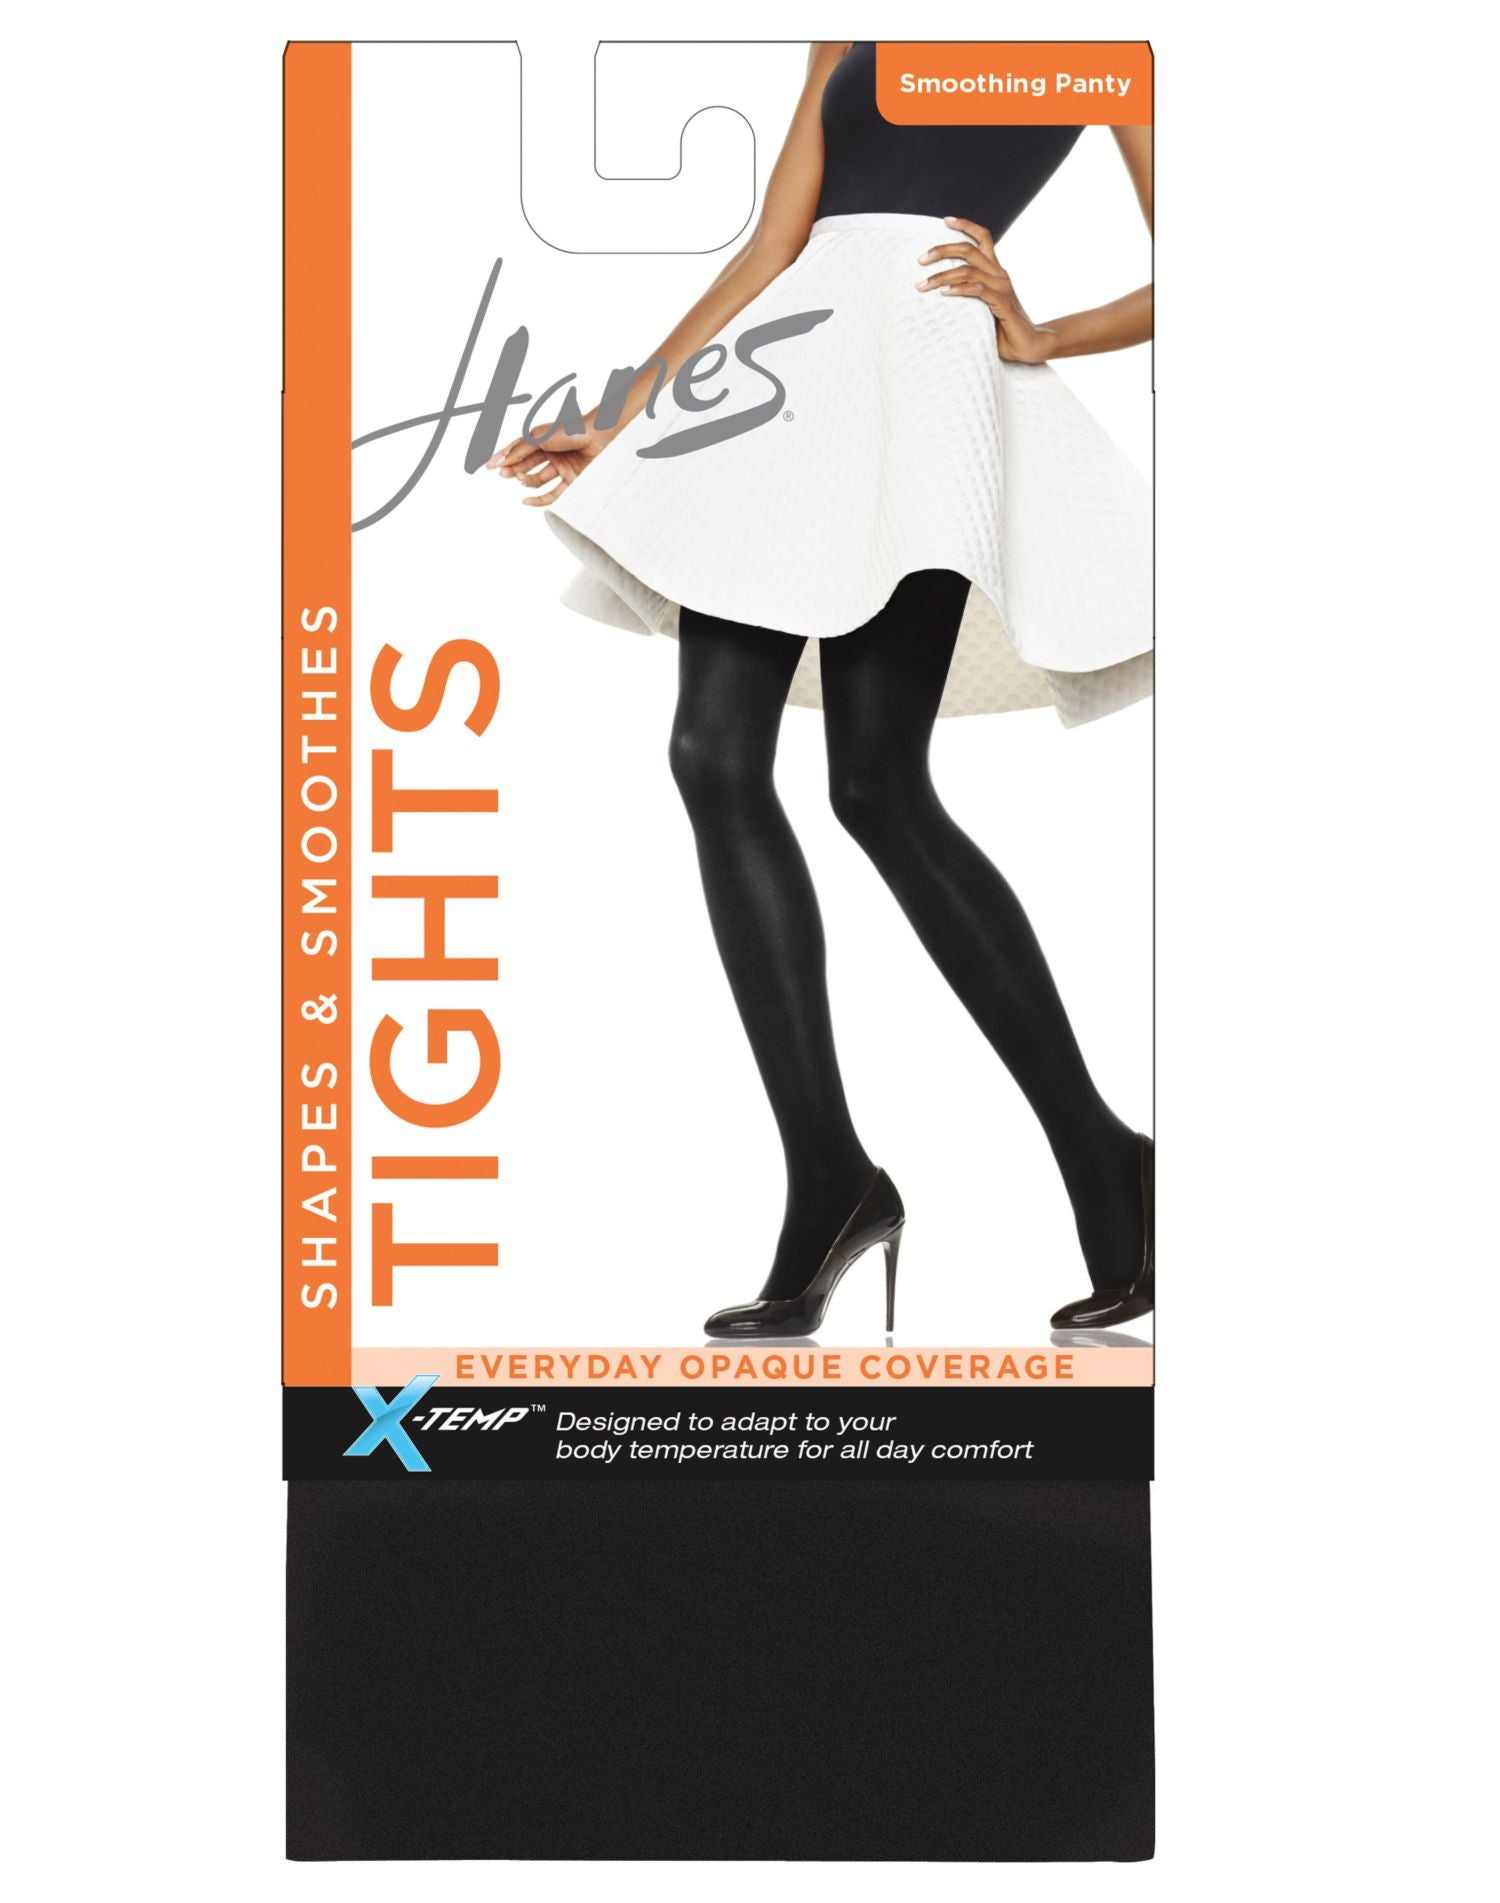 a32451a2ef9 0C168 - Hanes X-TEMP® Women`s Opaque Tight with Smoothing Panty – NY ...